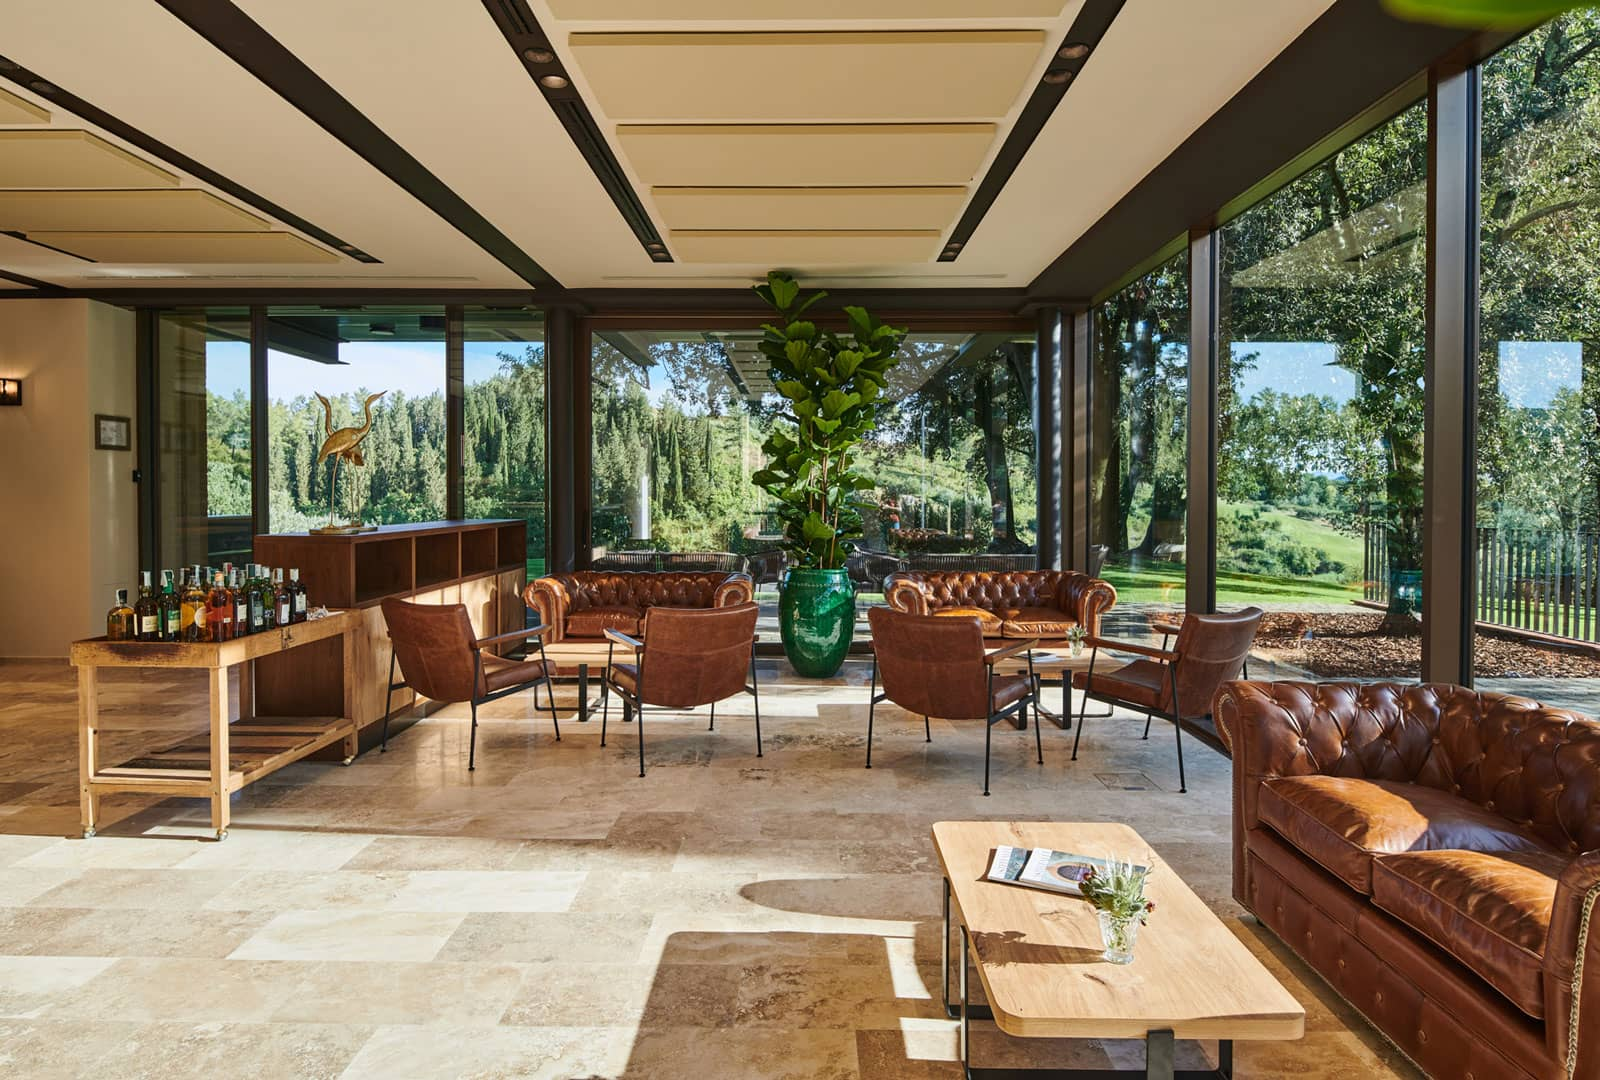 Interior view of the Country Club House, Golf Club Castelfalfi